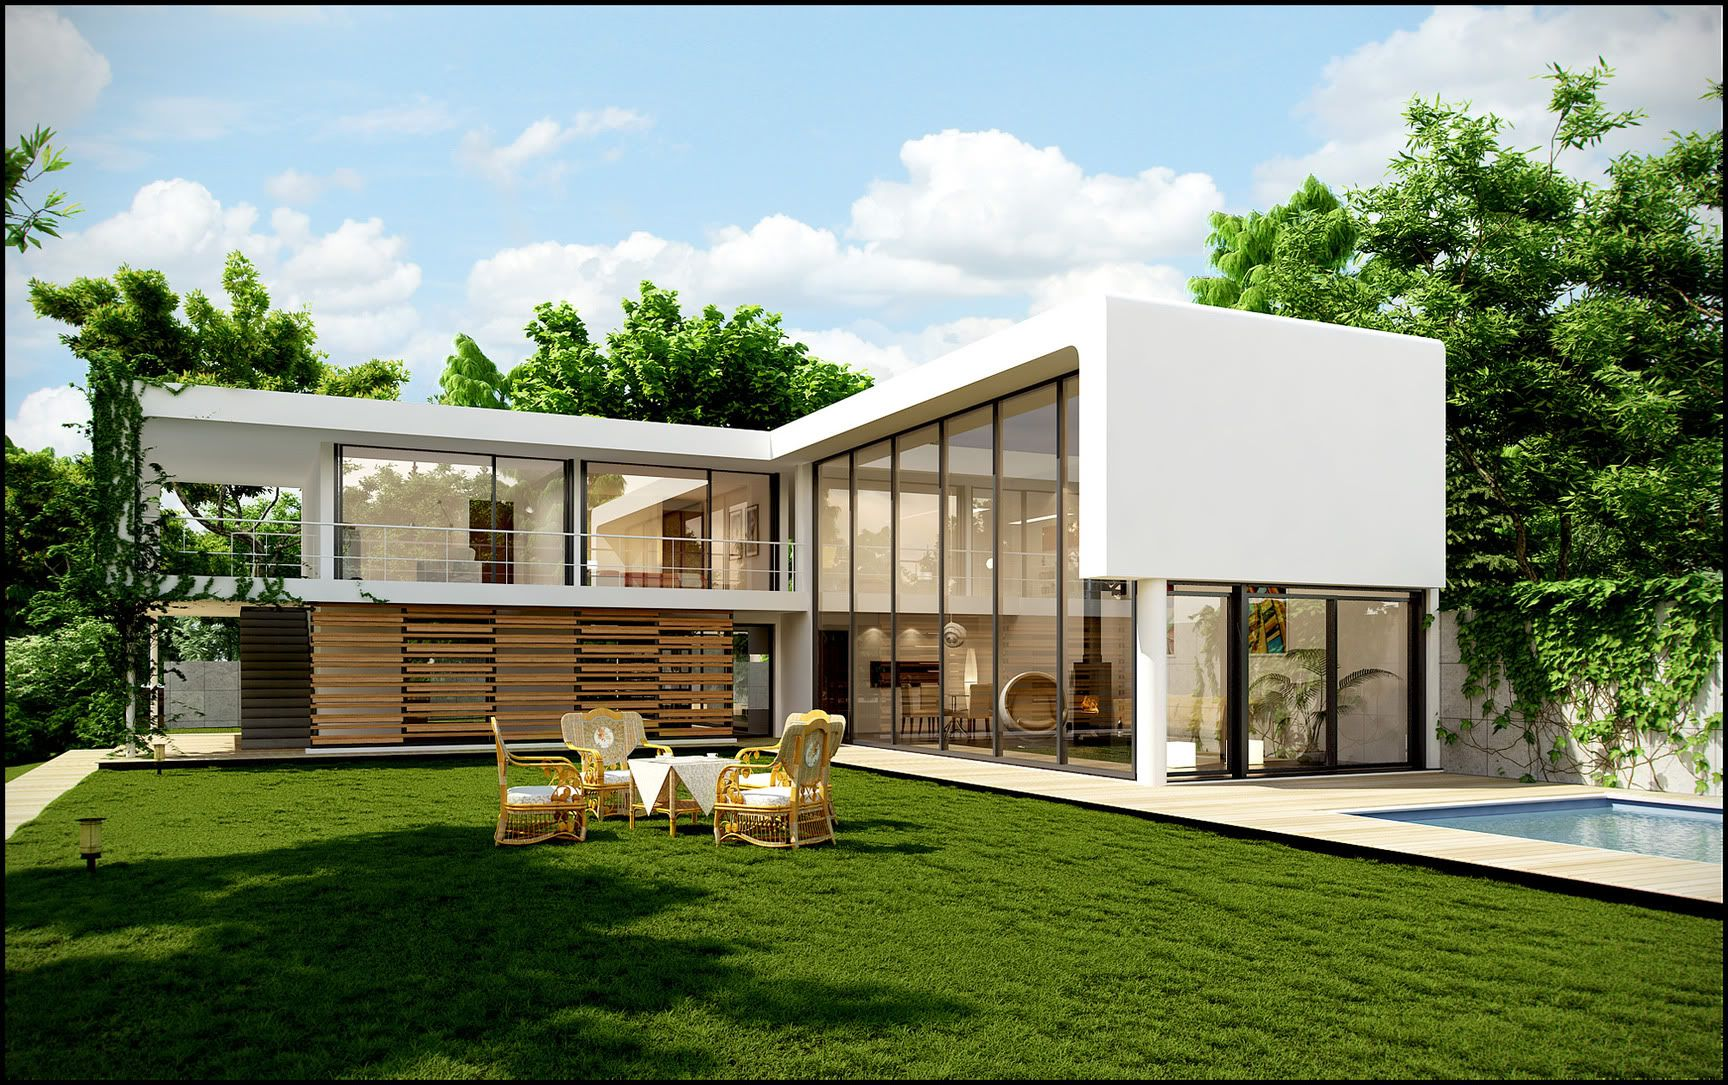 terrific modern house window. House architecture exterior impressive l shape small modern house